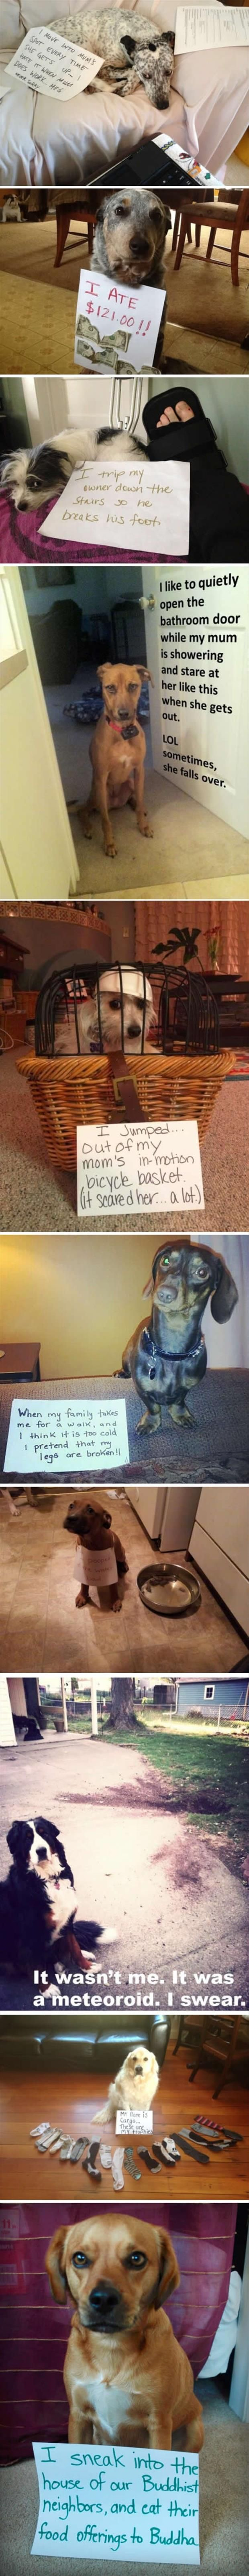 these crack me up especially the one about the dog sneaking into the bathroom and staring at its owner